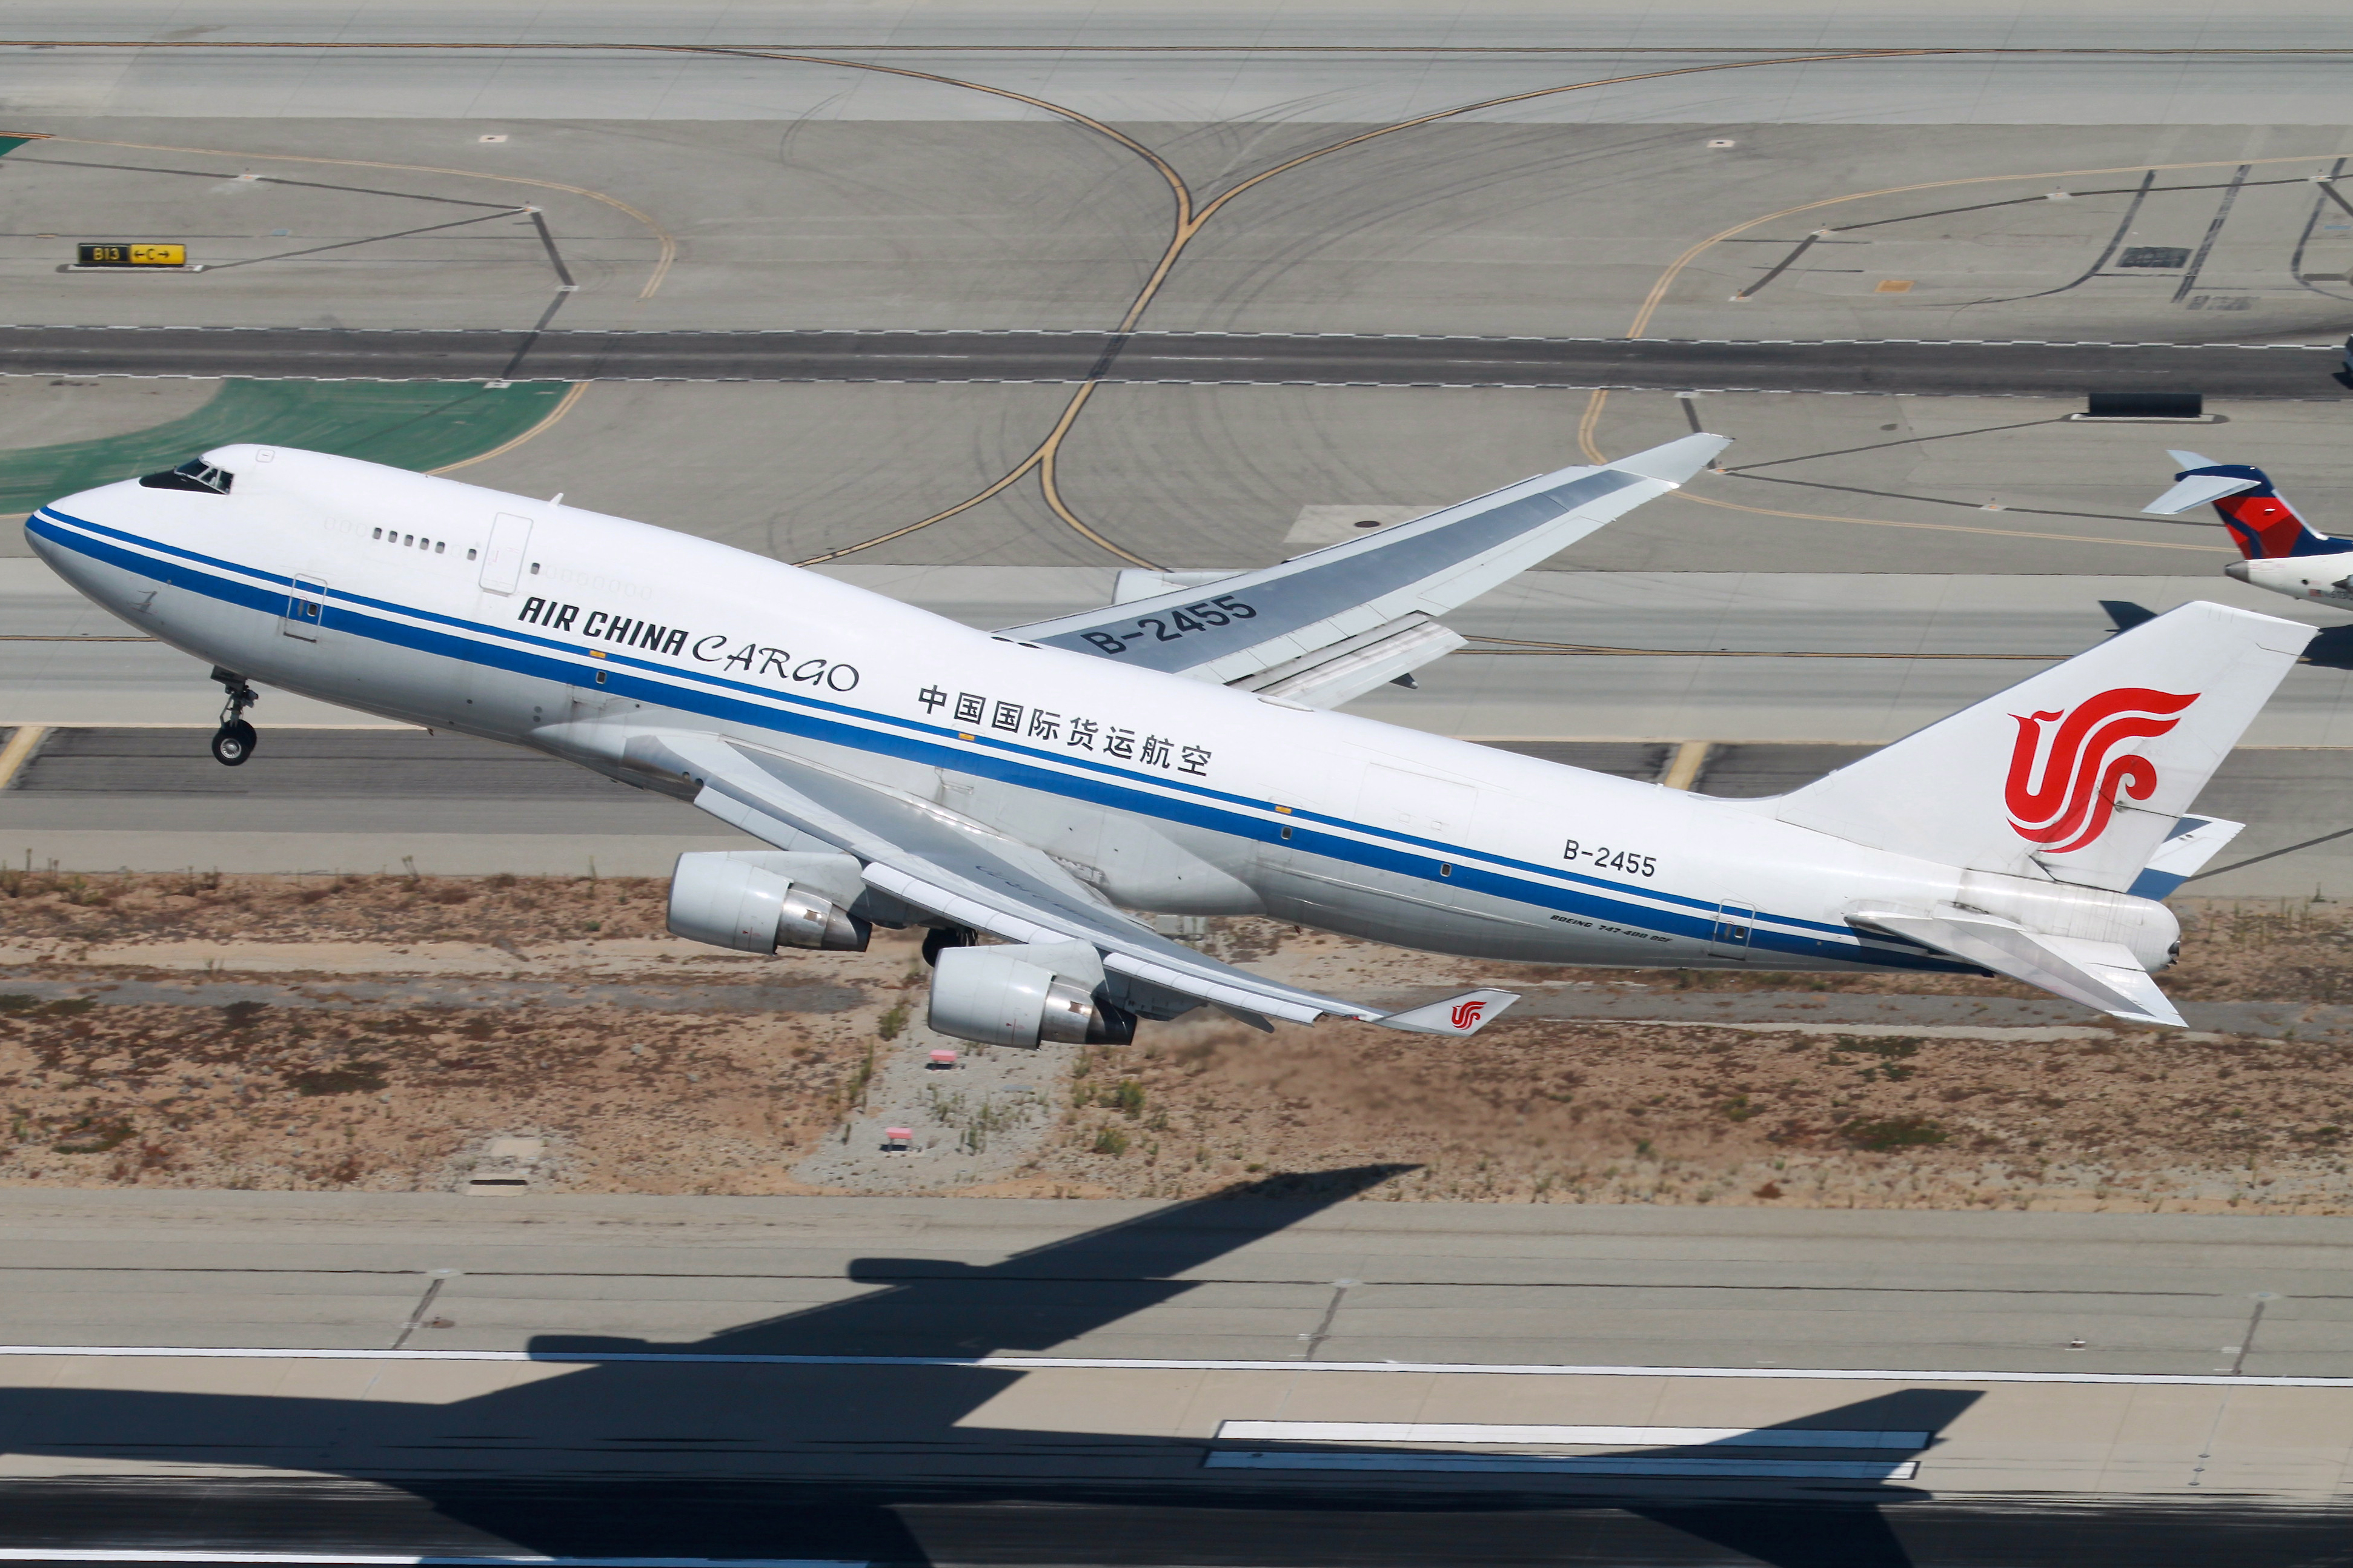 File:Air China B-2455 at lax (13437587725).jpg